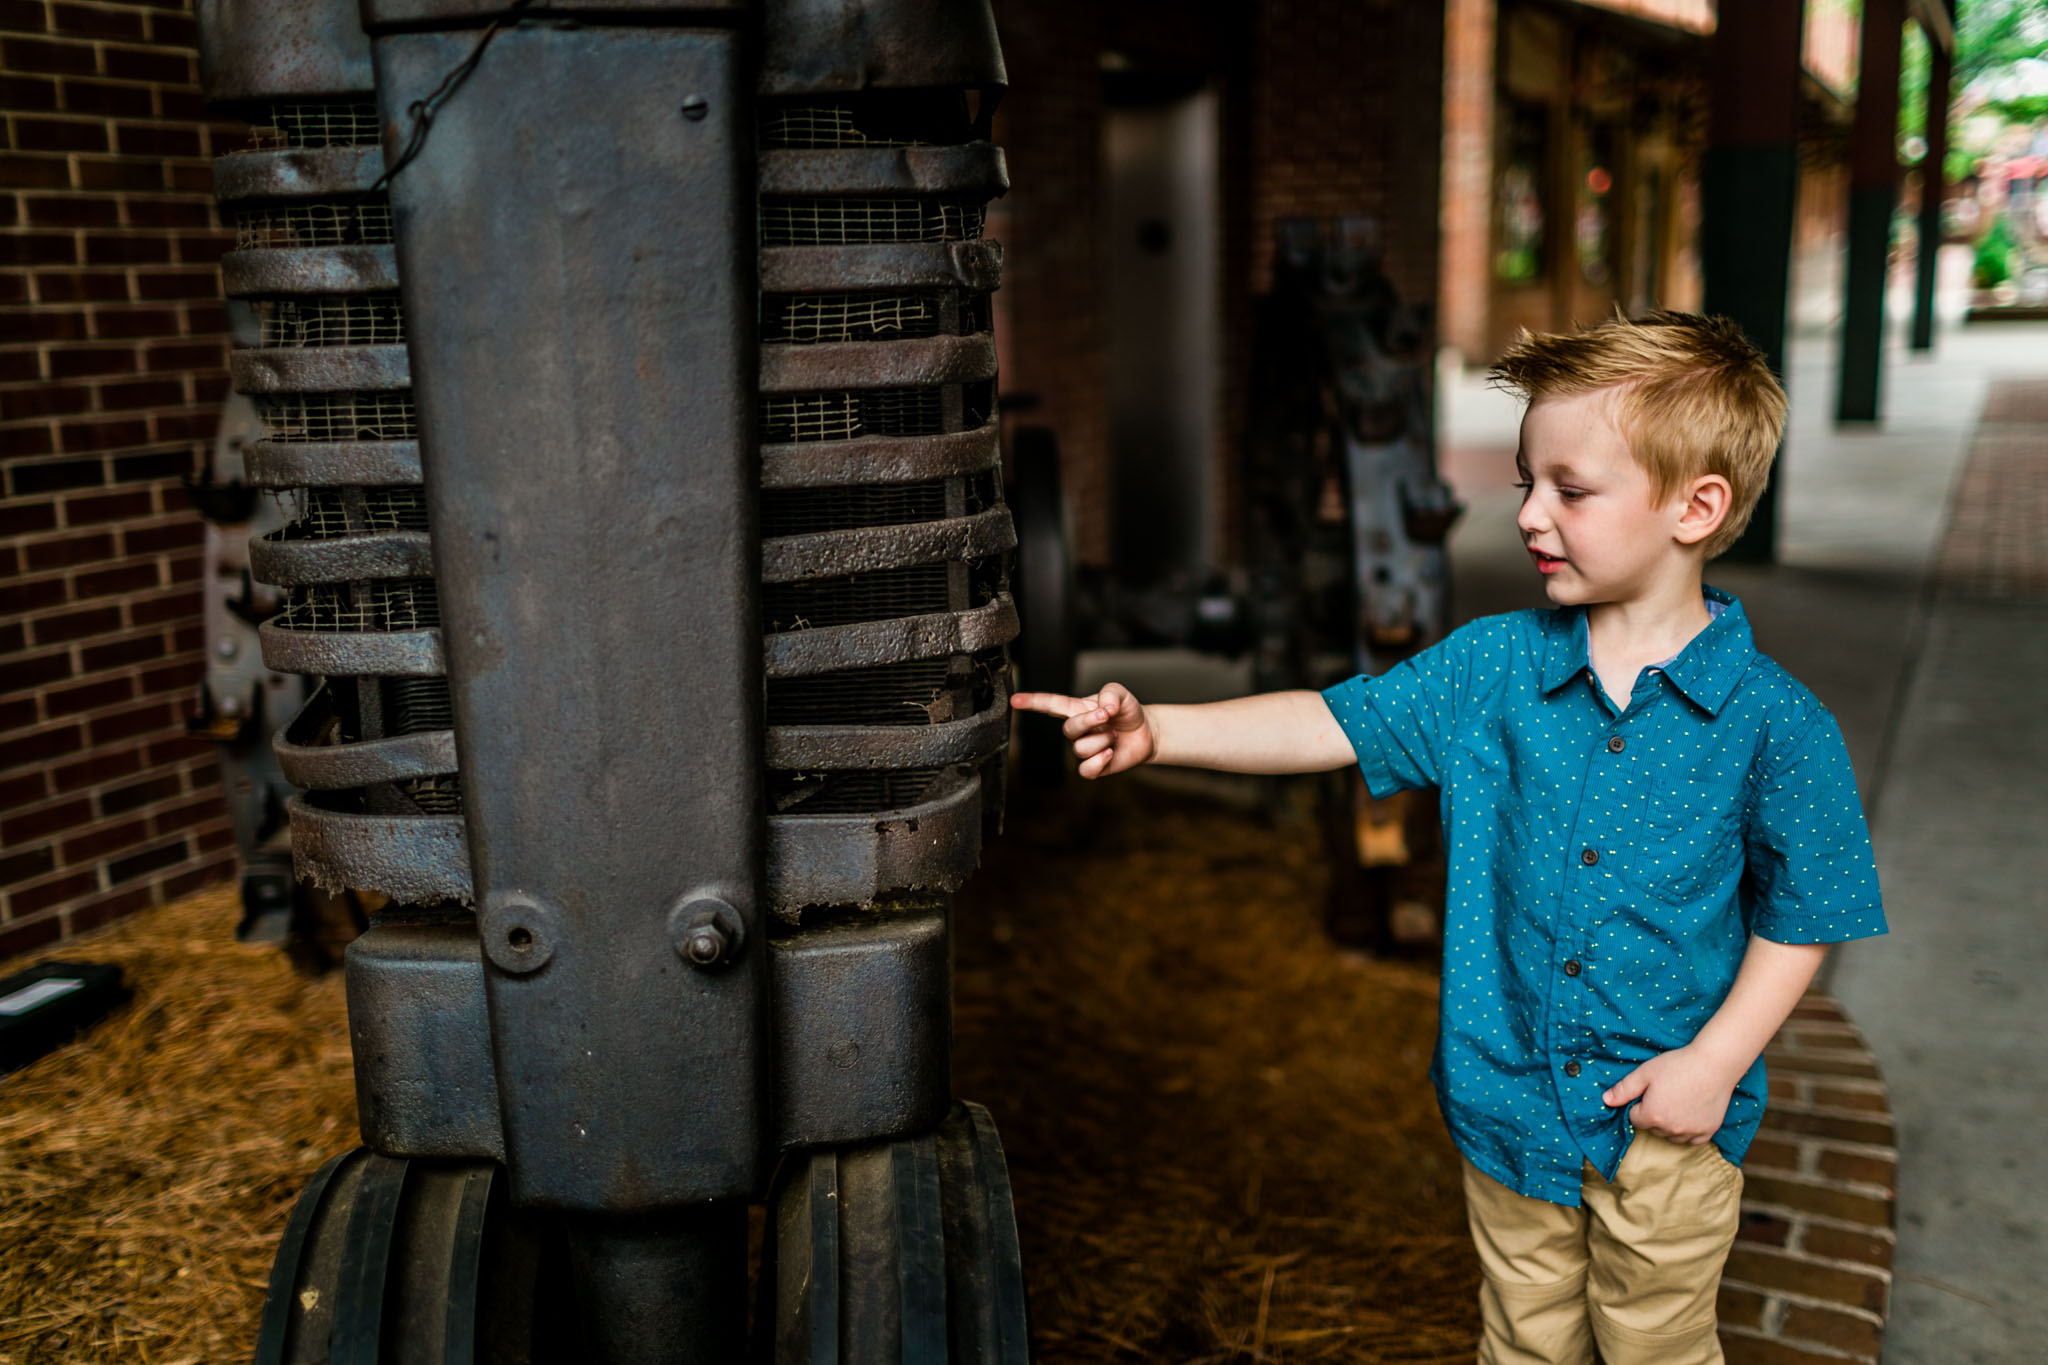 Durham Photographer | By G. Lin Photography | Young buy pointing at tractor